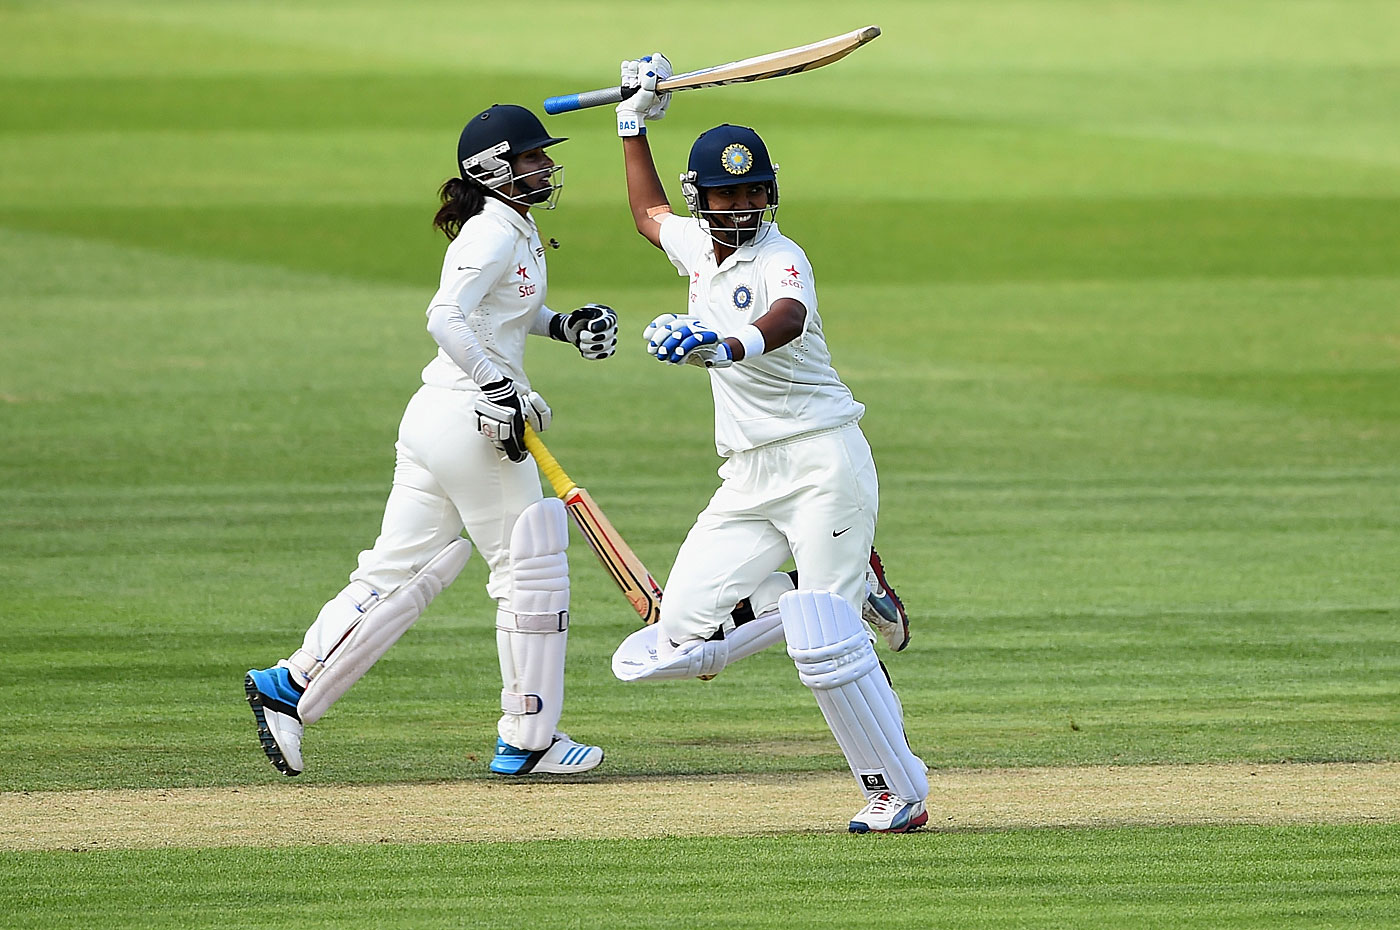 Following India's memorable win at Wormsley in 2014, the BCCI has shown some enthusiasm for women's Tests